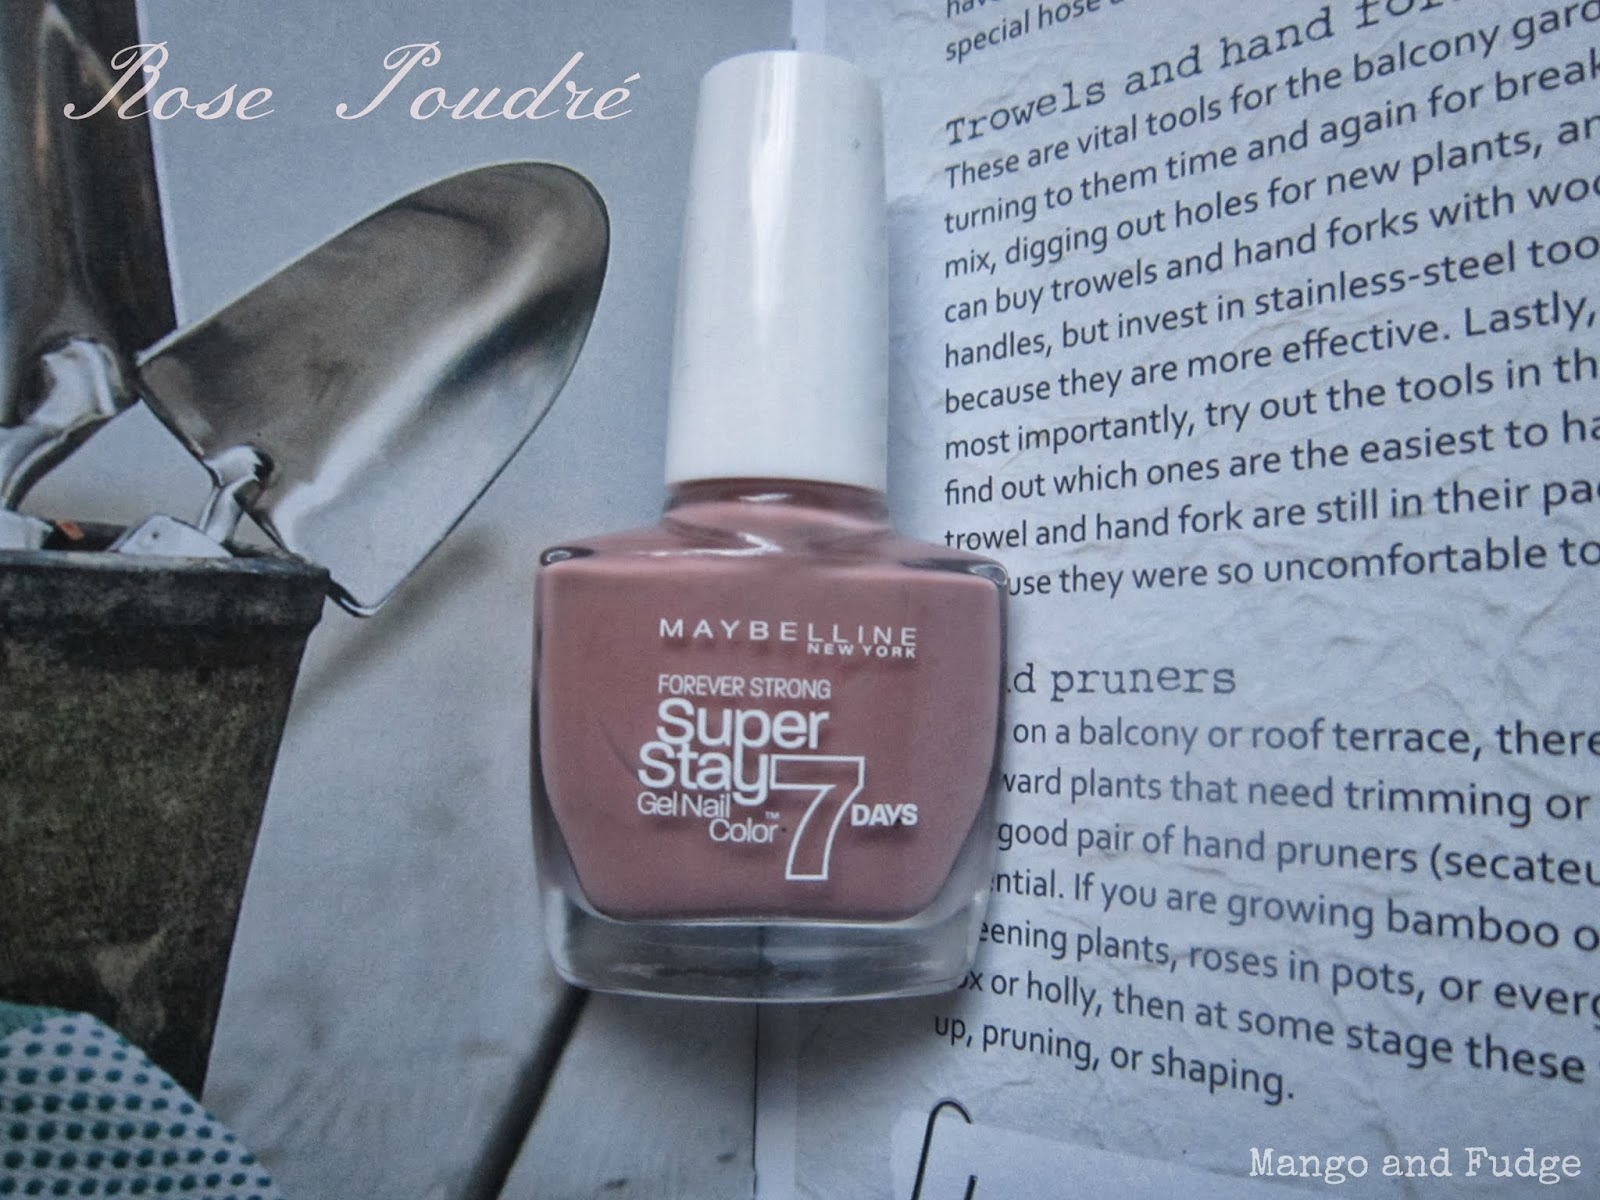 maybelline forever strong superstay 7 days gel nail color in rose